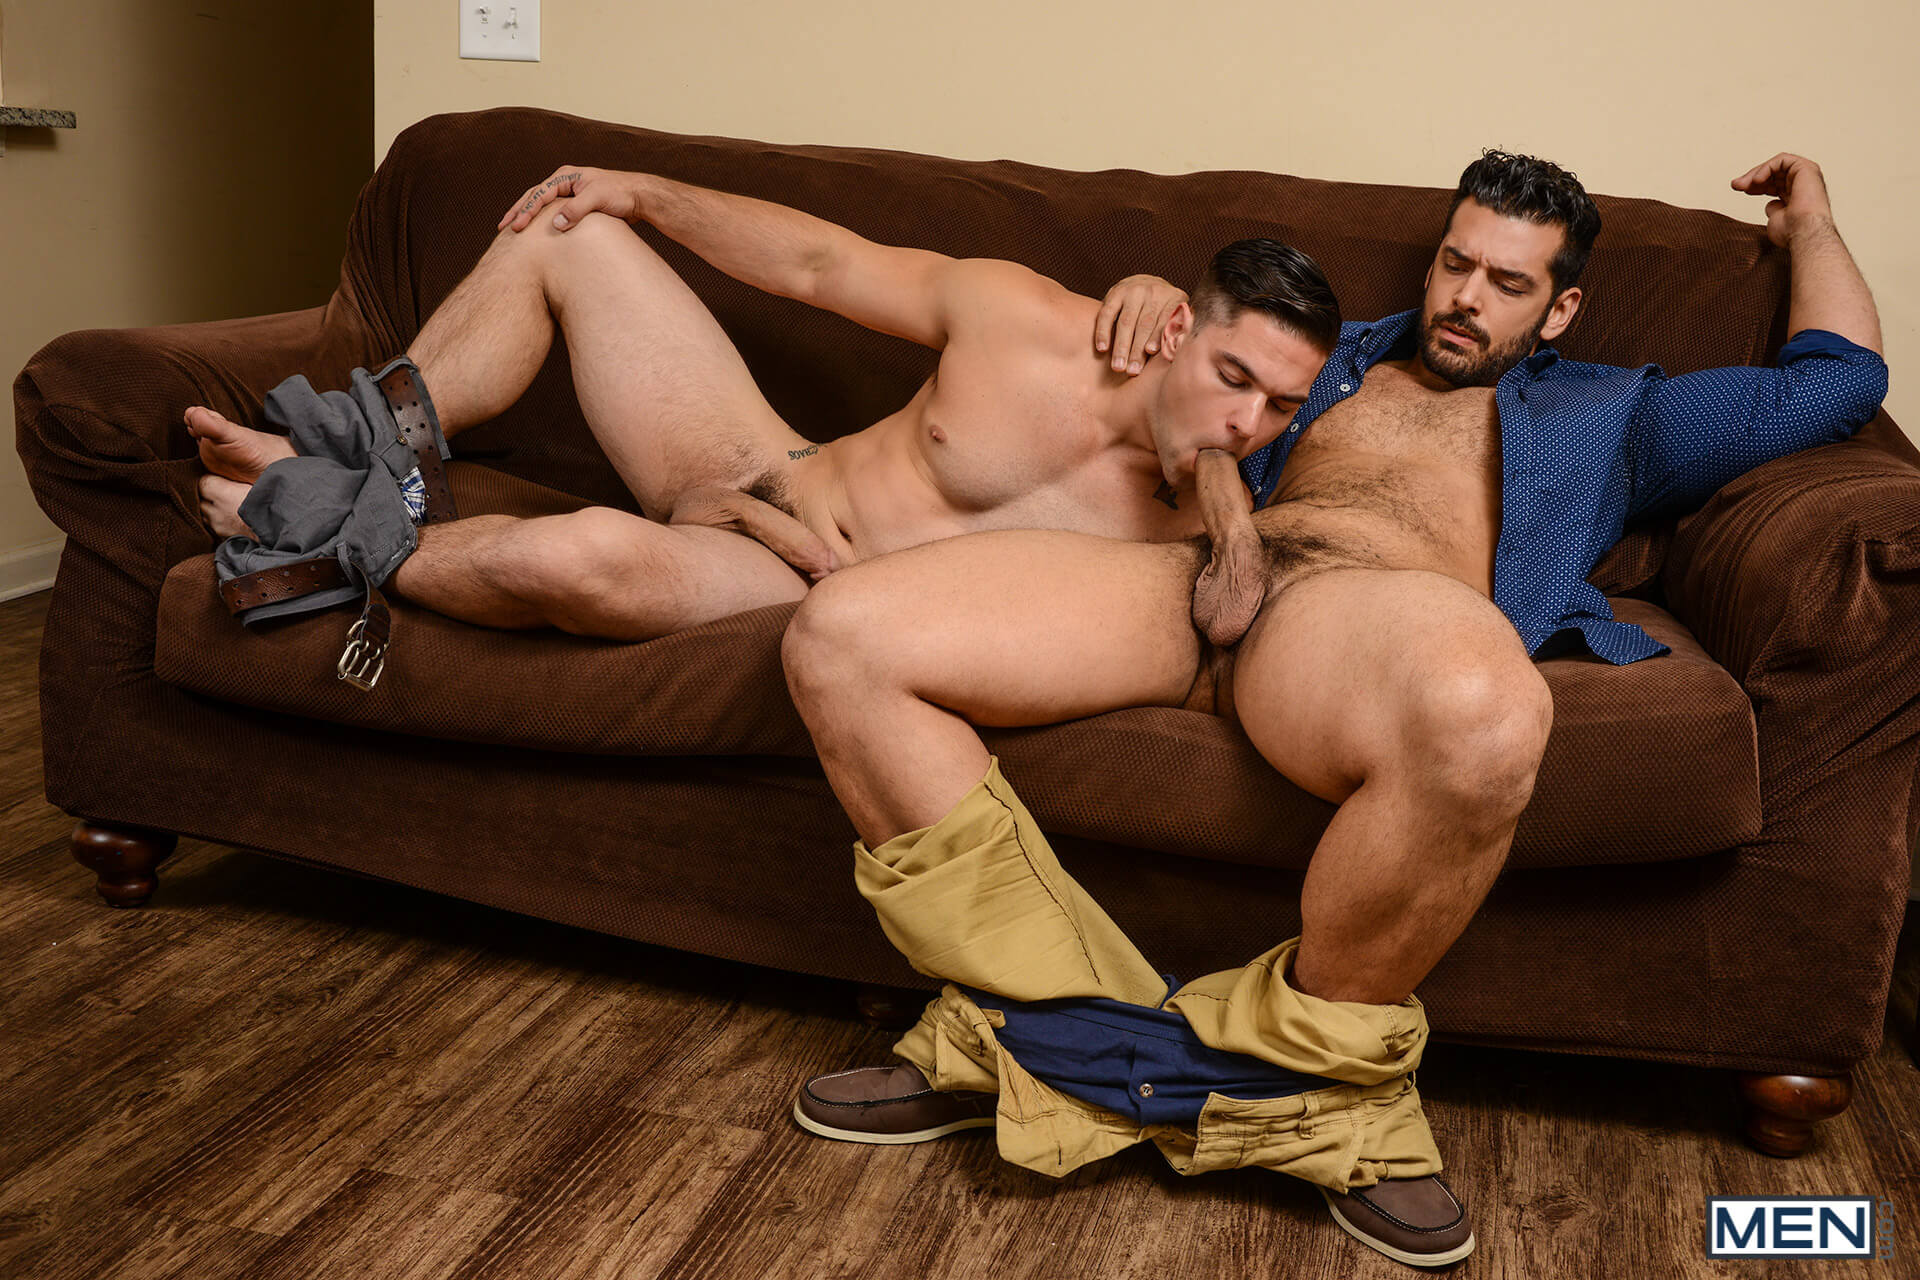 cock sexy hd men photo full